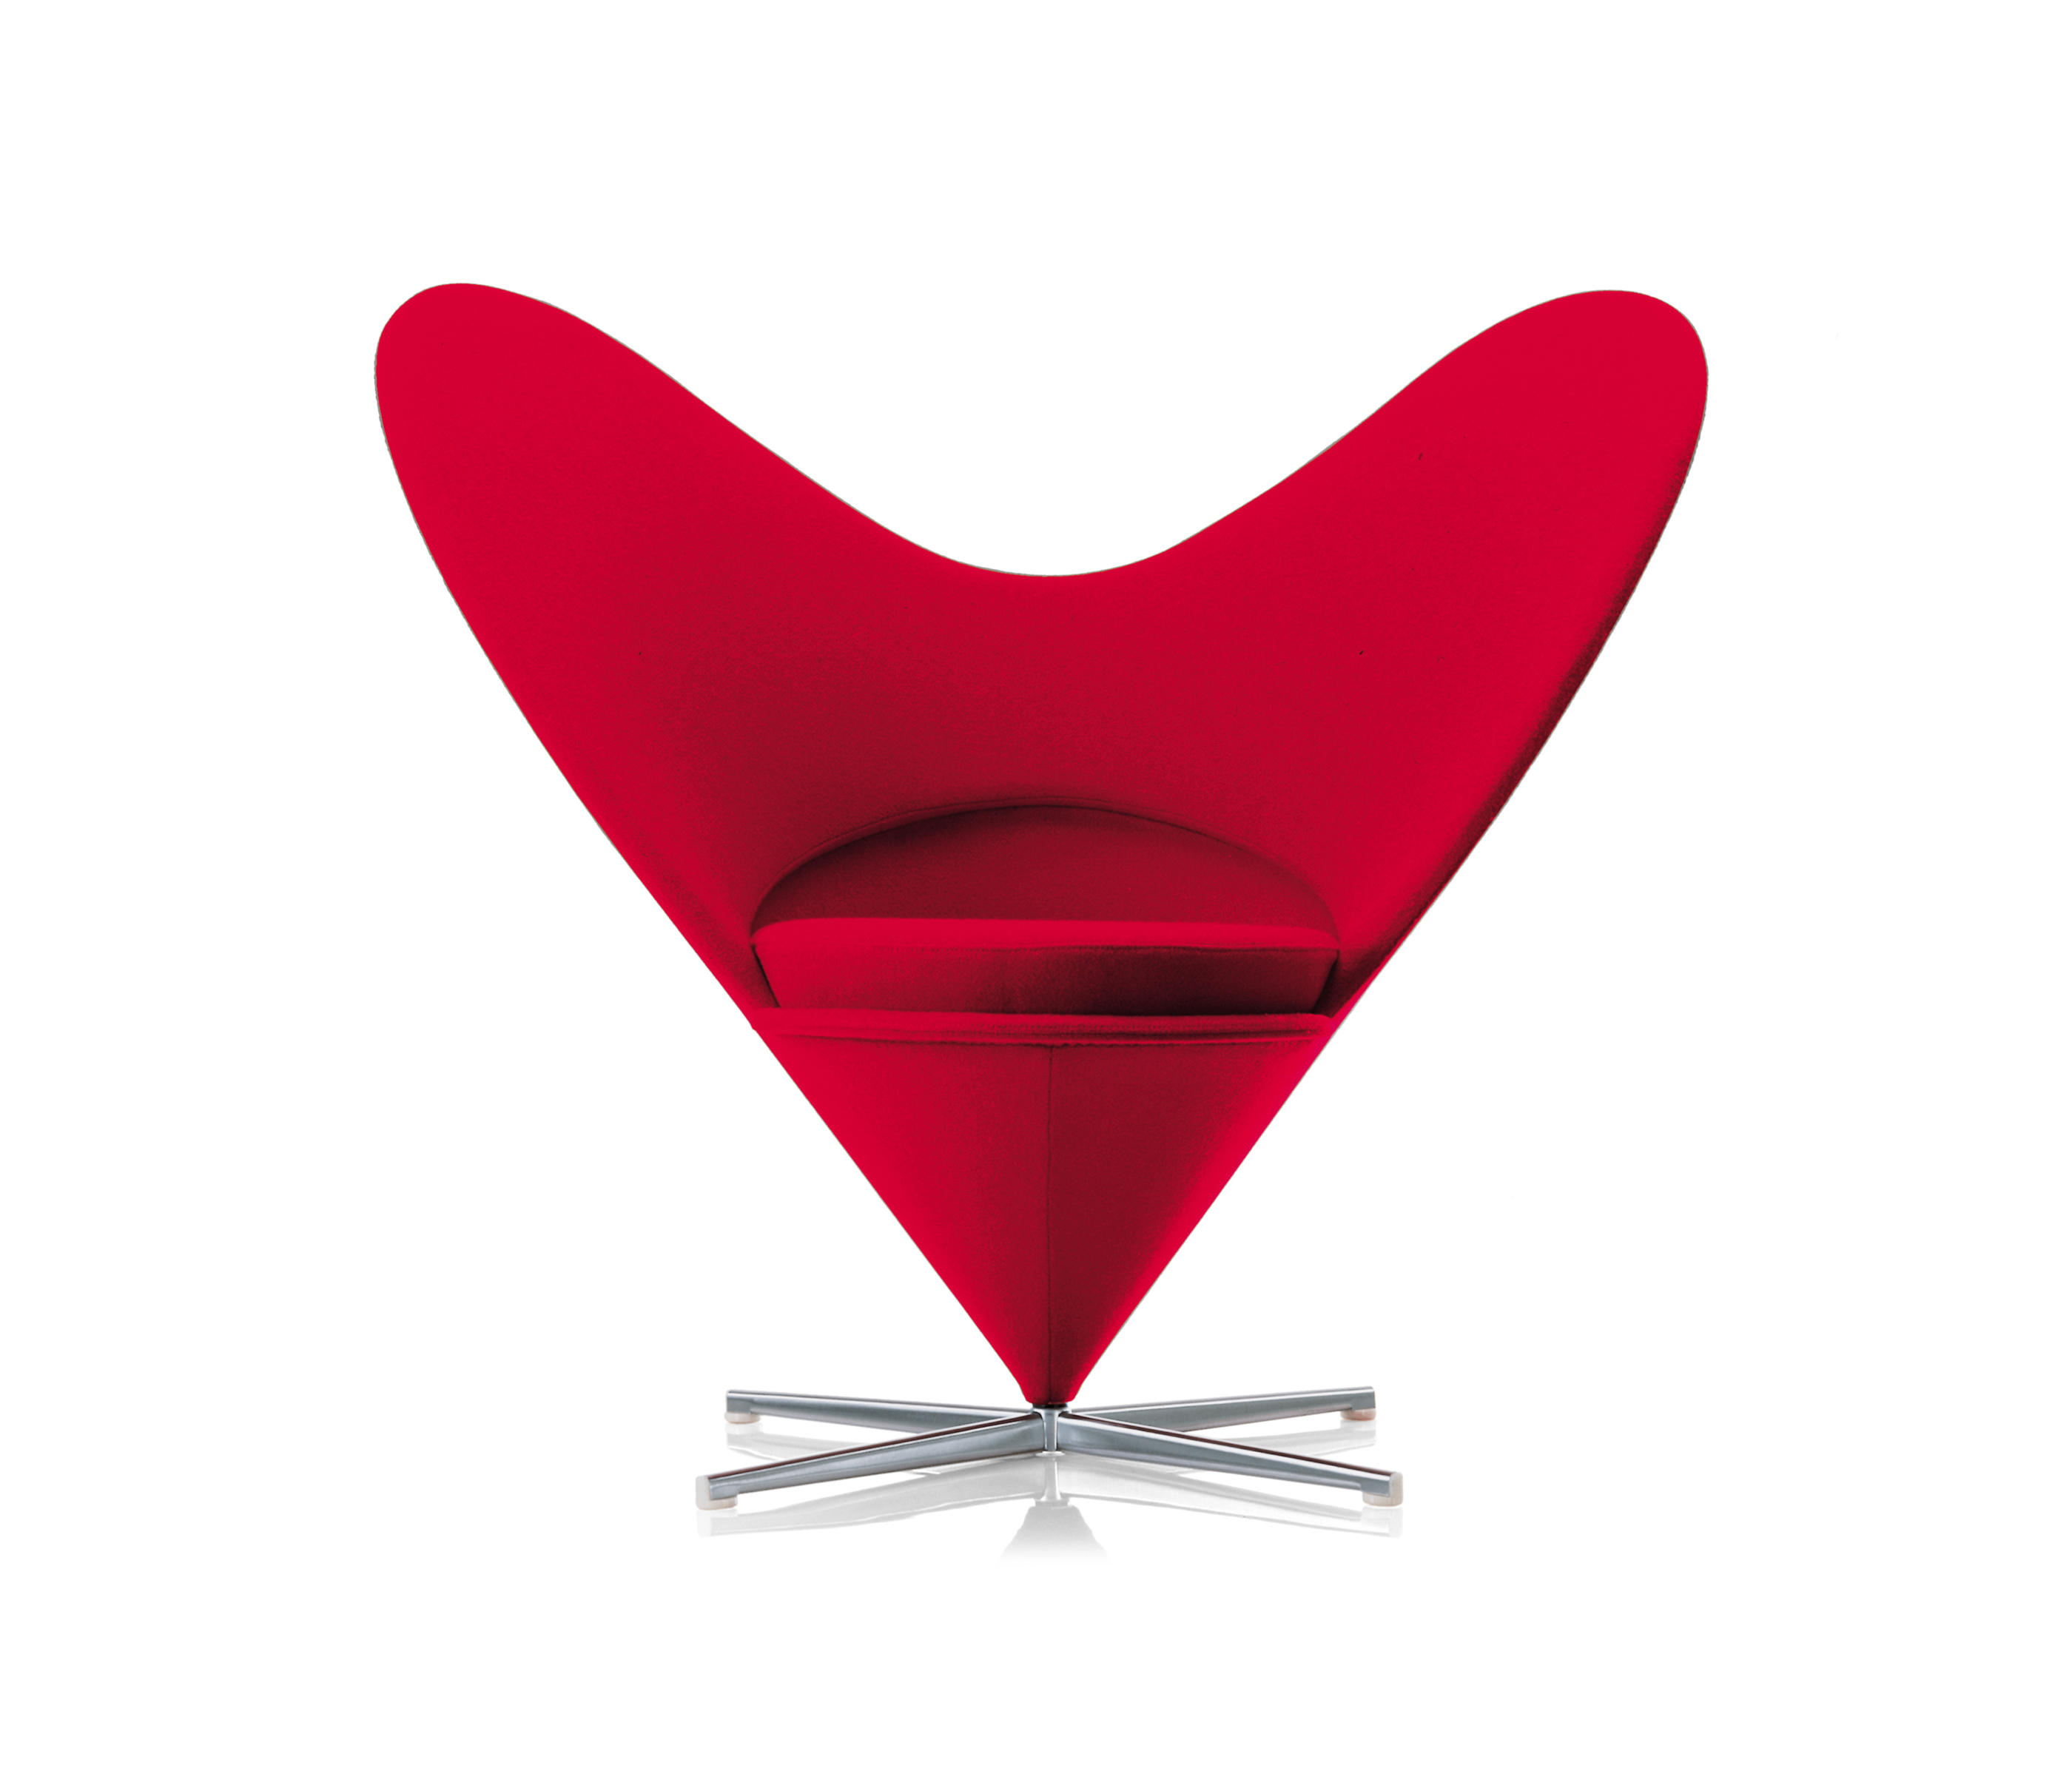 Heart Cone Chair by Vitra | Armchairs ...  sc 1 st  Architonic & HEART CONE CHAIR - Armchairs from Vitra | Architonic